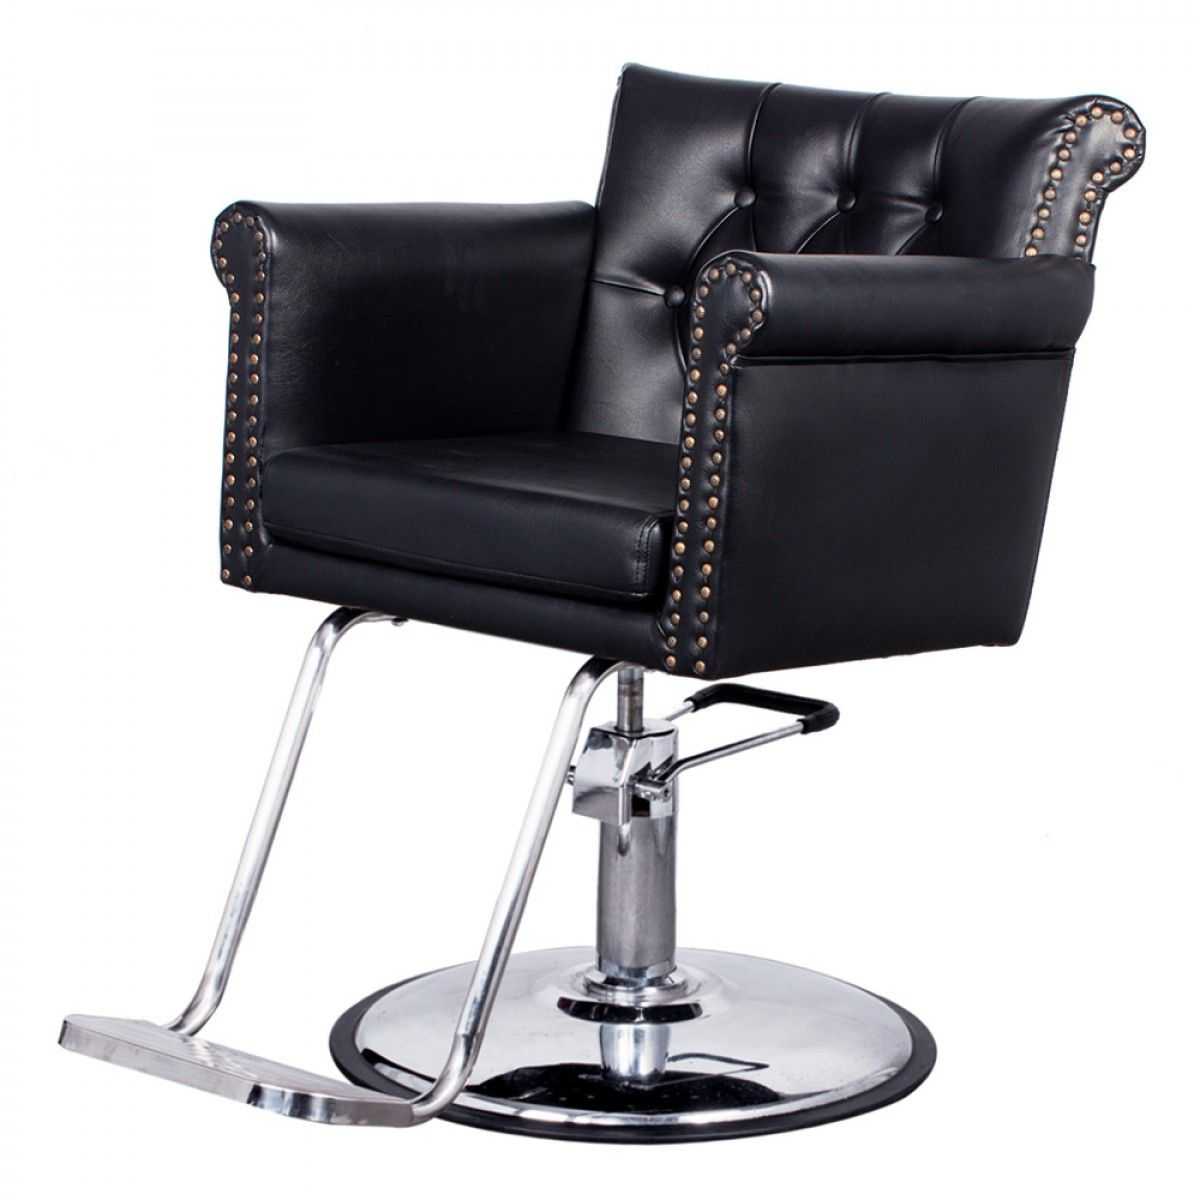 Used Salon Chairs >> Capri Salon Styling Chair 4 Colours Free Shipping Special Price